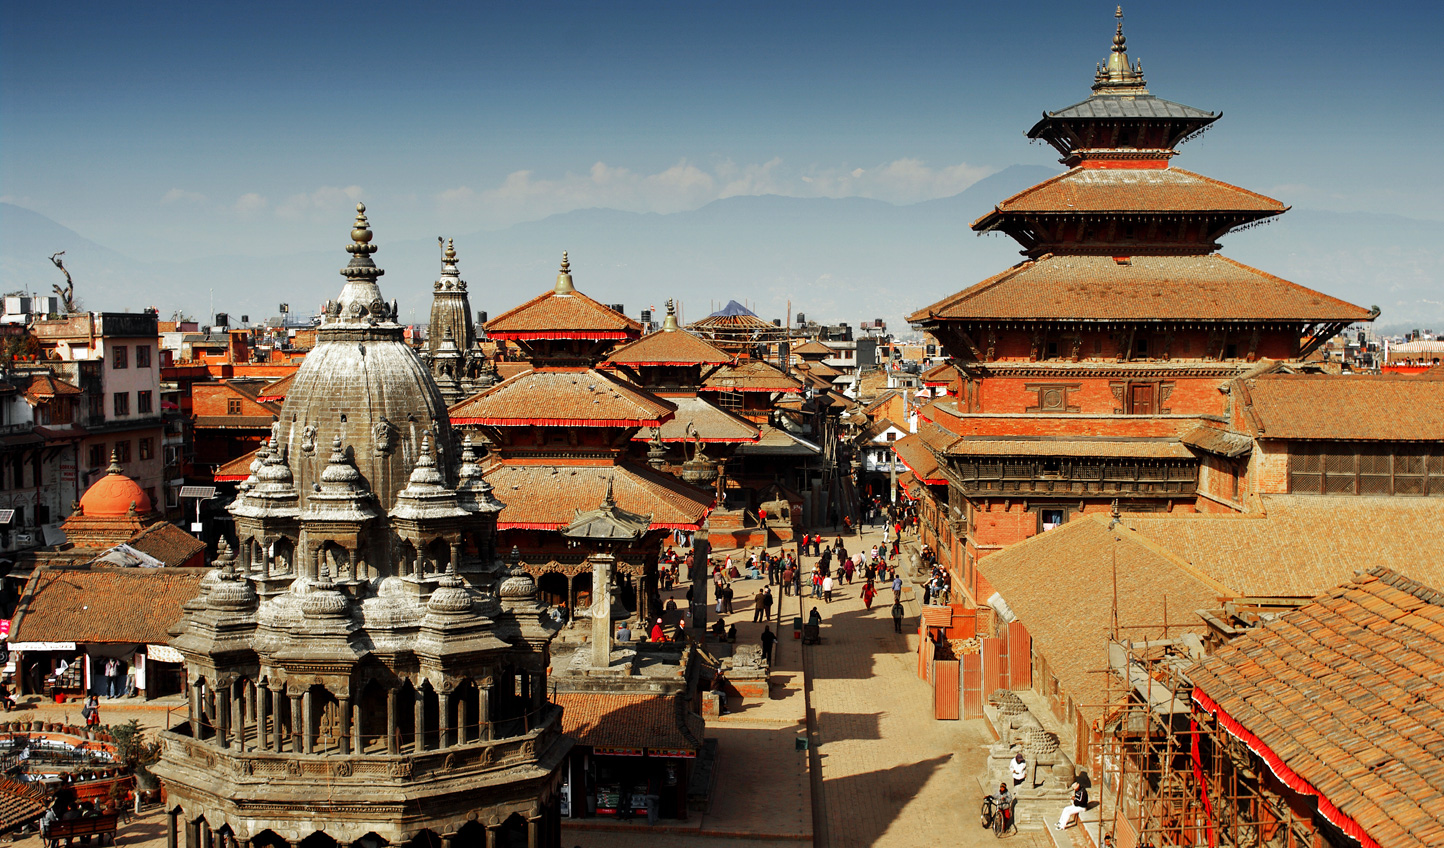 Cut through the maze of backstreets to Durbar Square where you can hone your haggling skills in the market